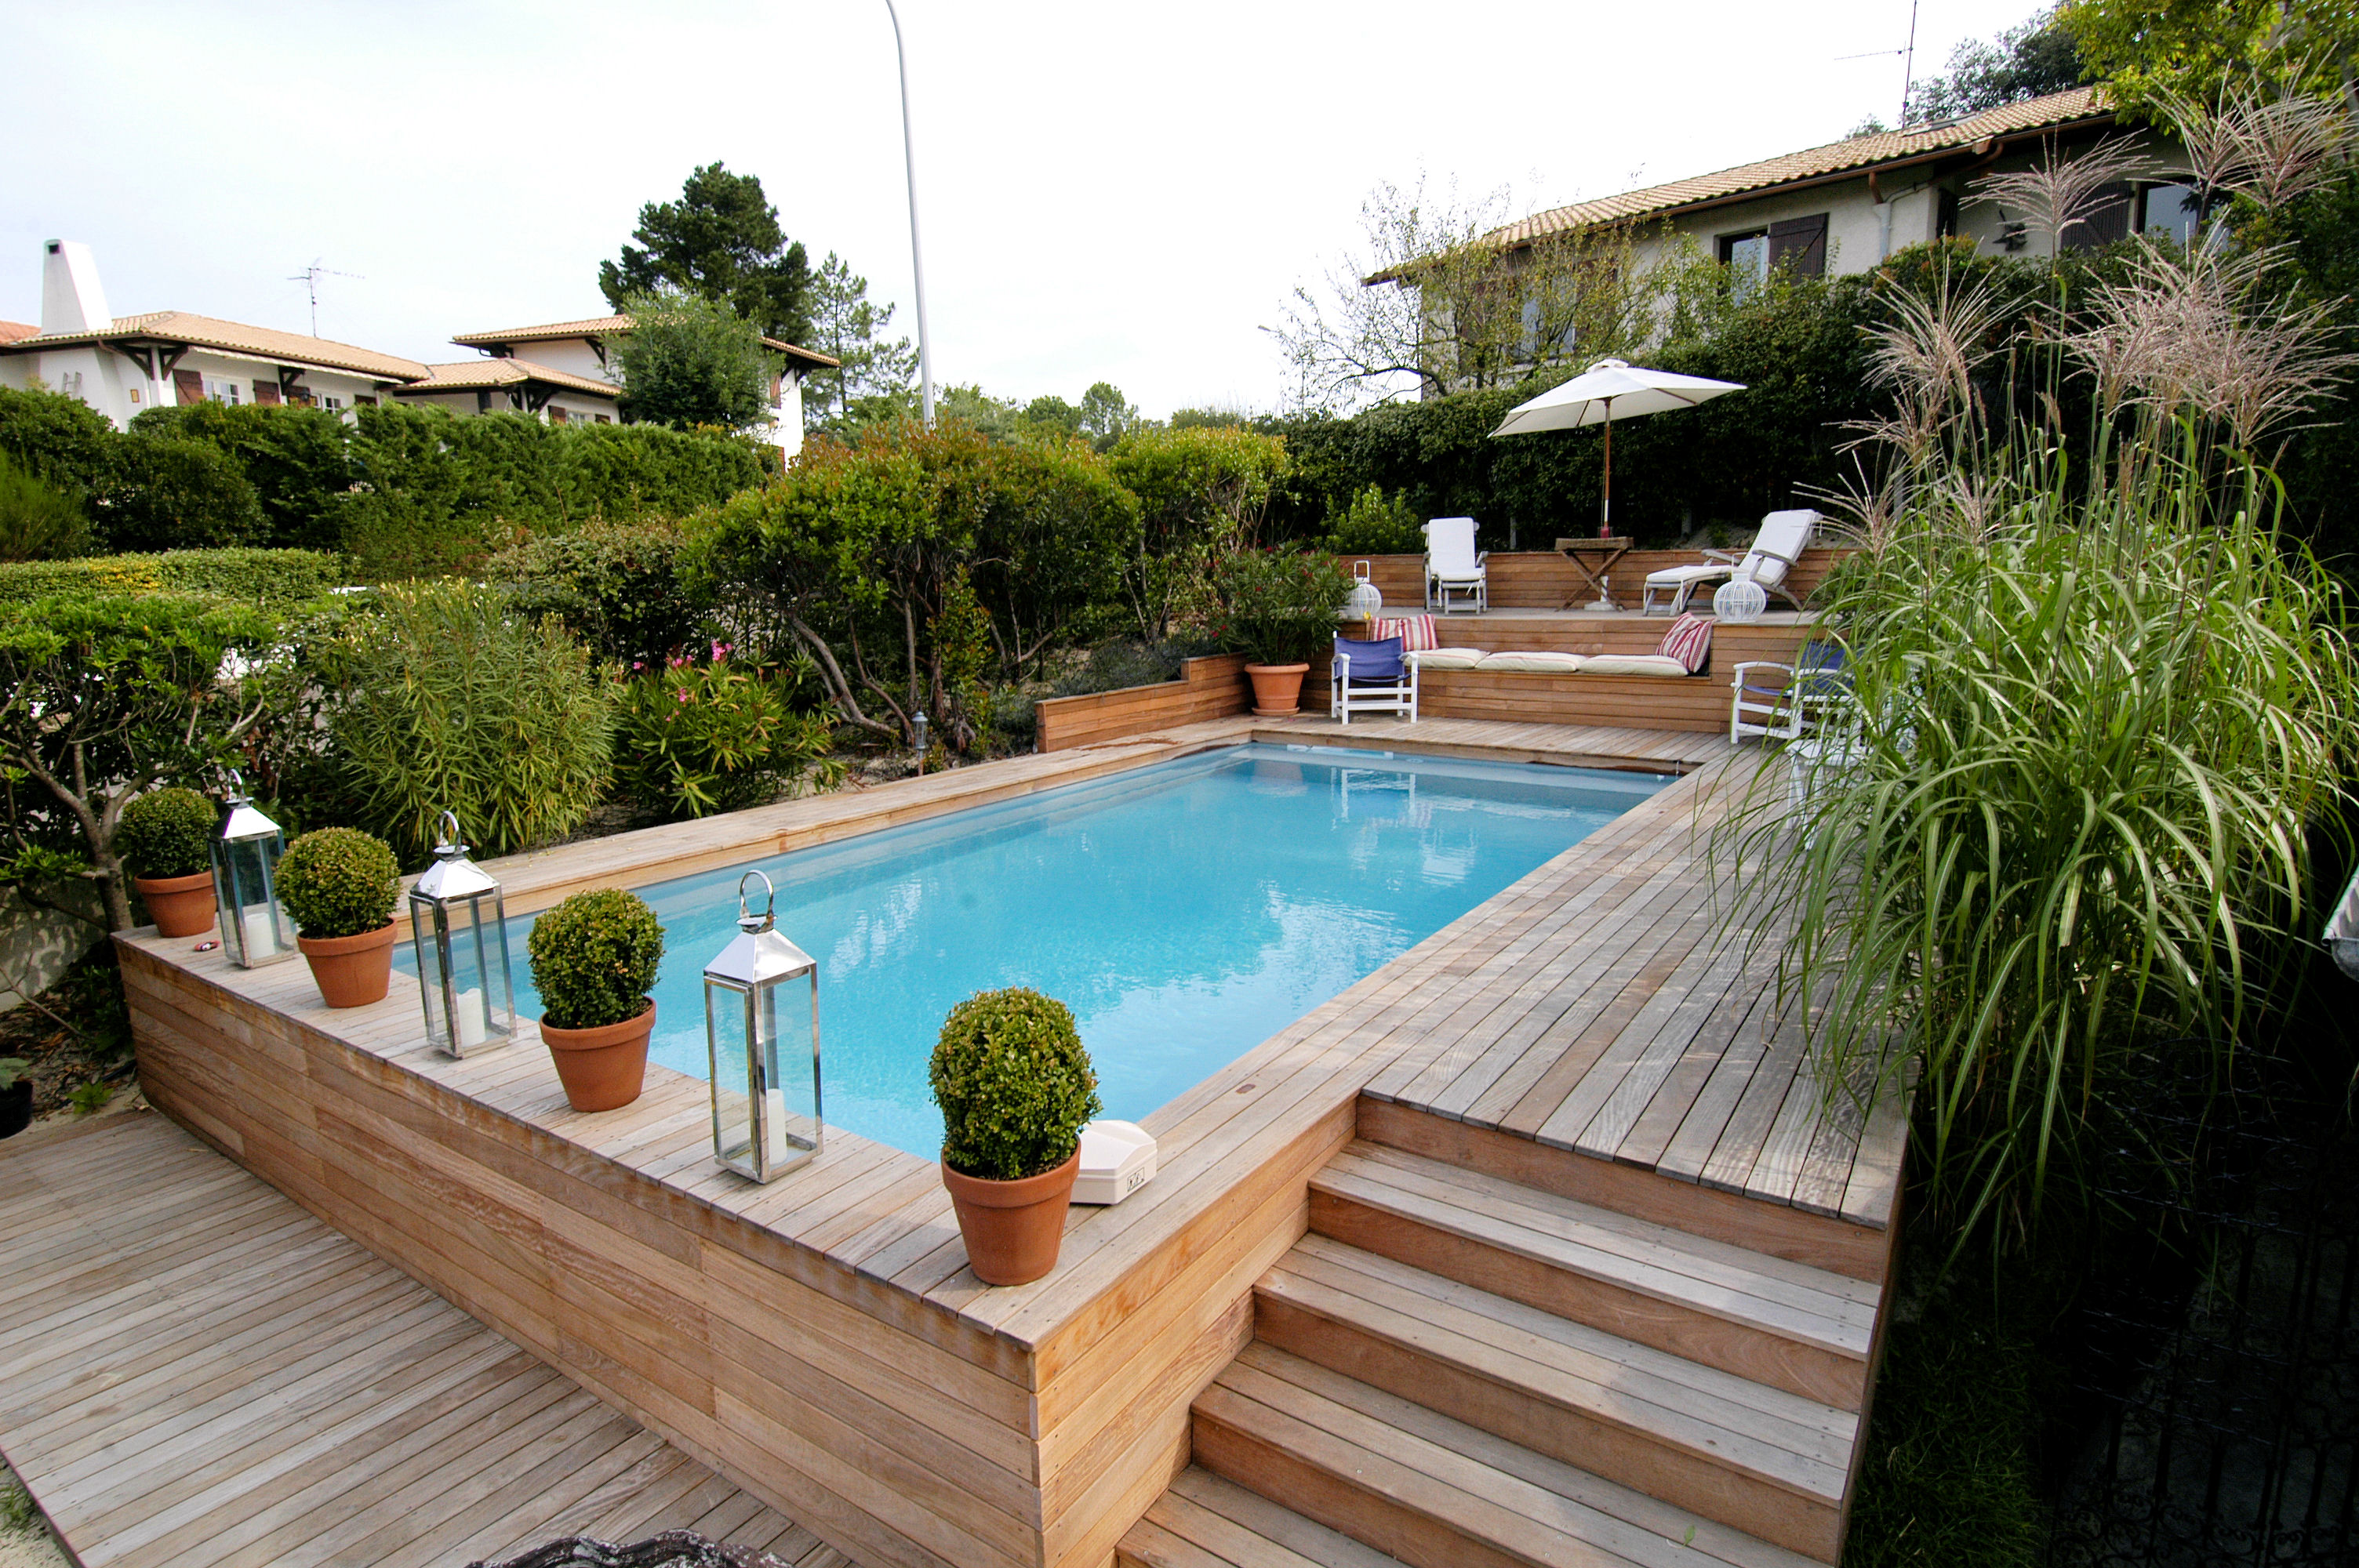 Piscine bois semi enterr e 3m for Piscine bois enterree